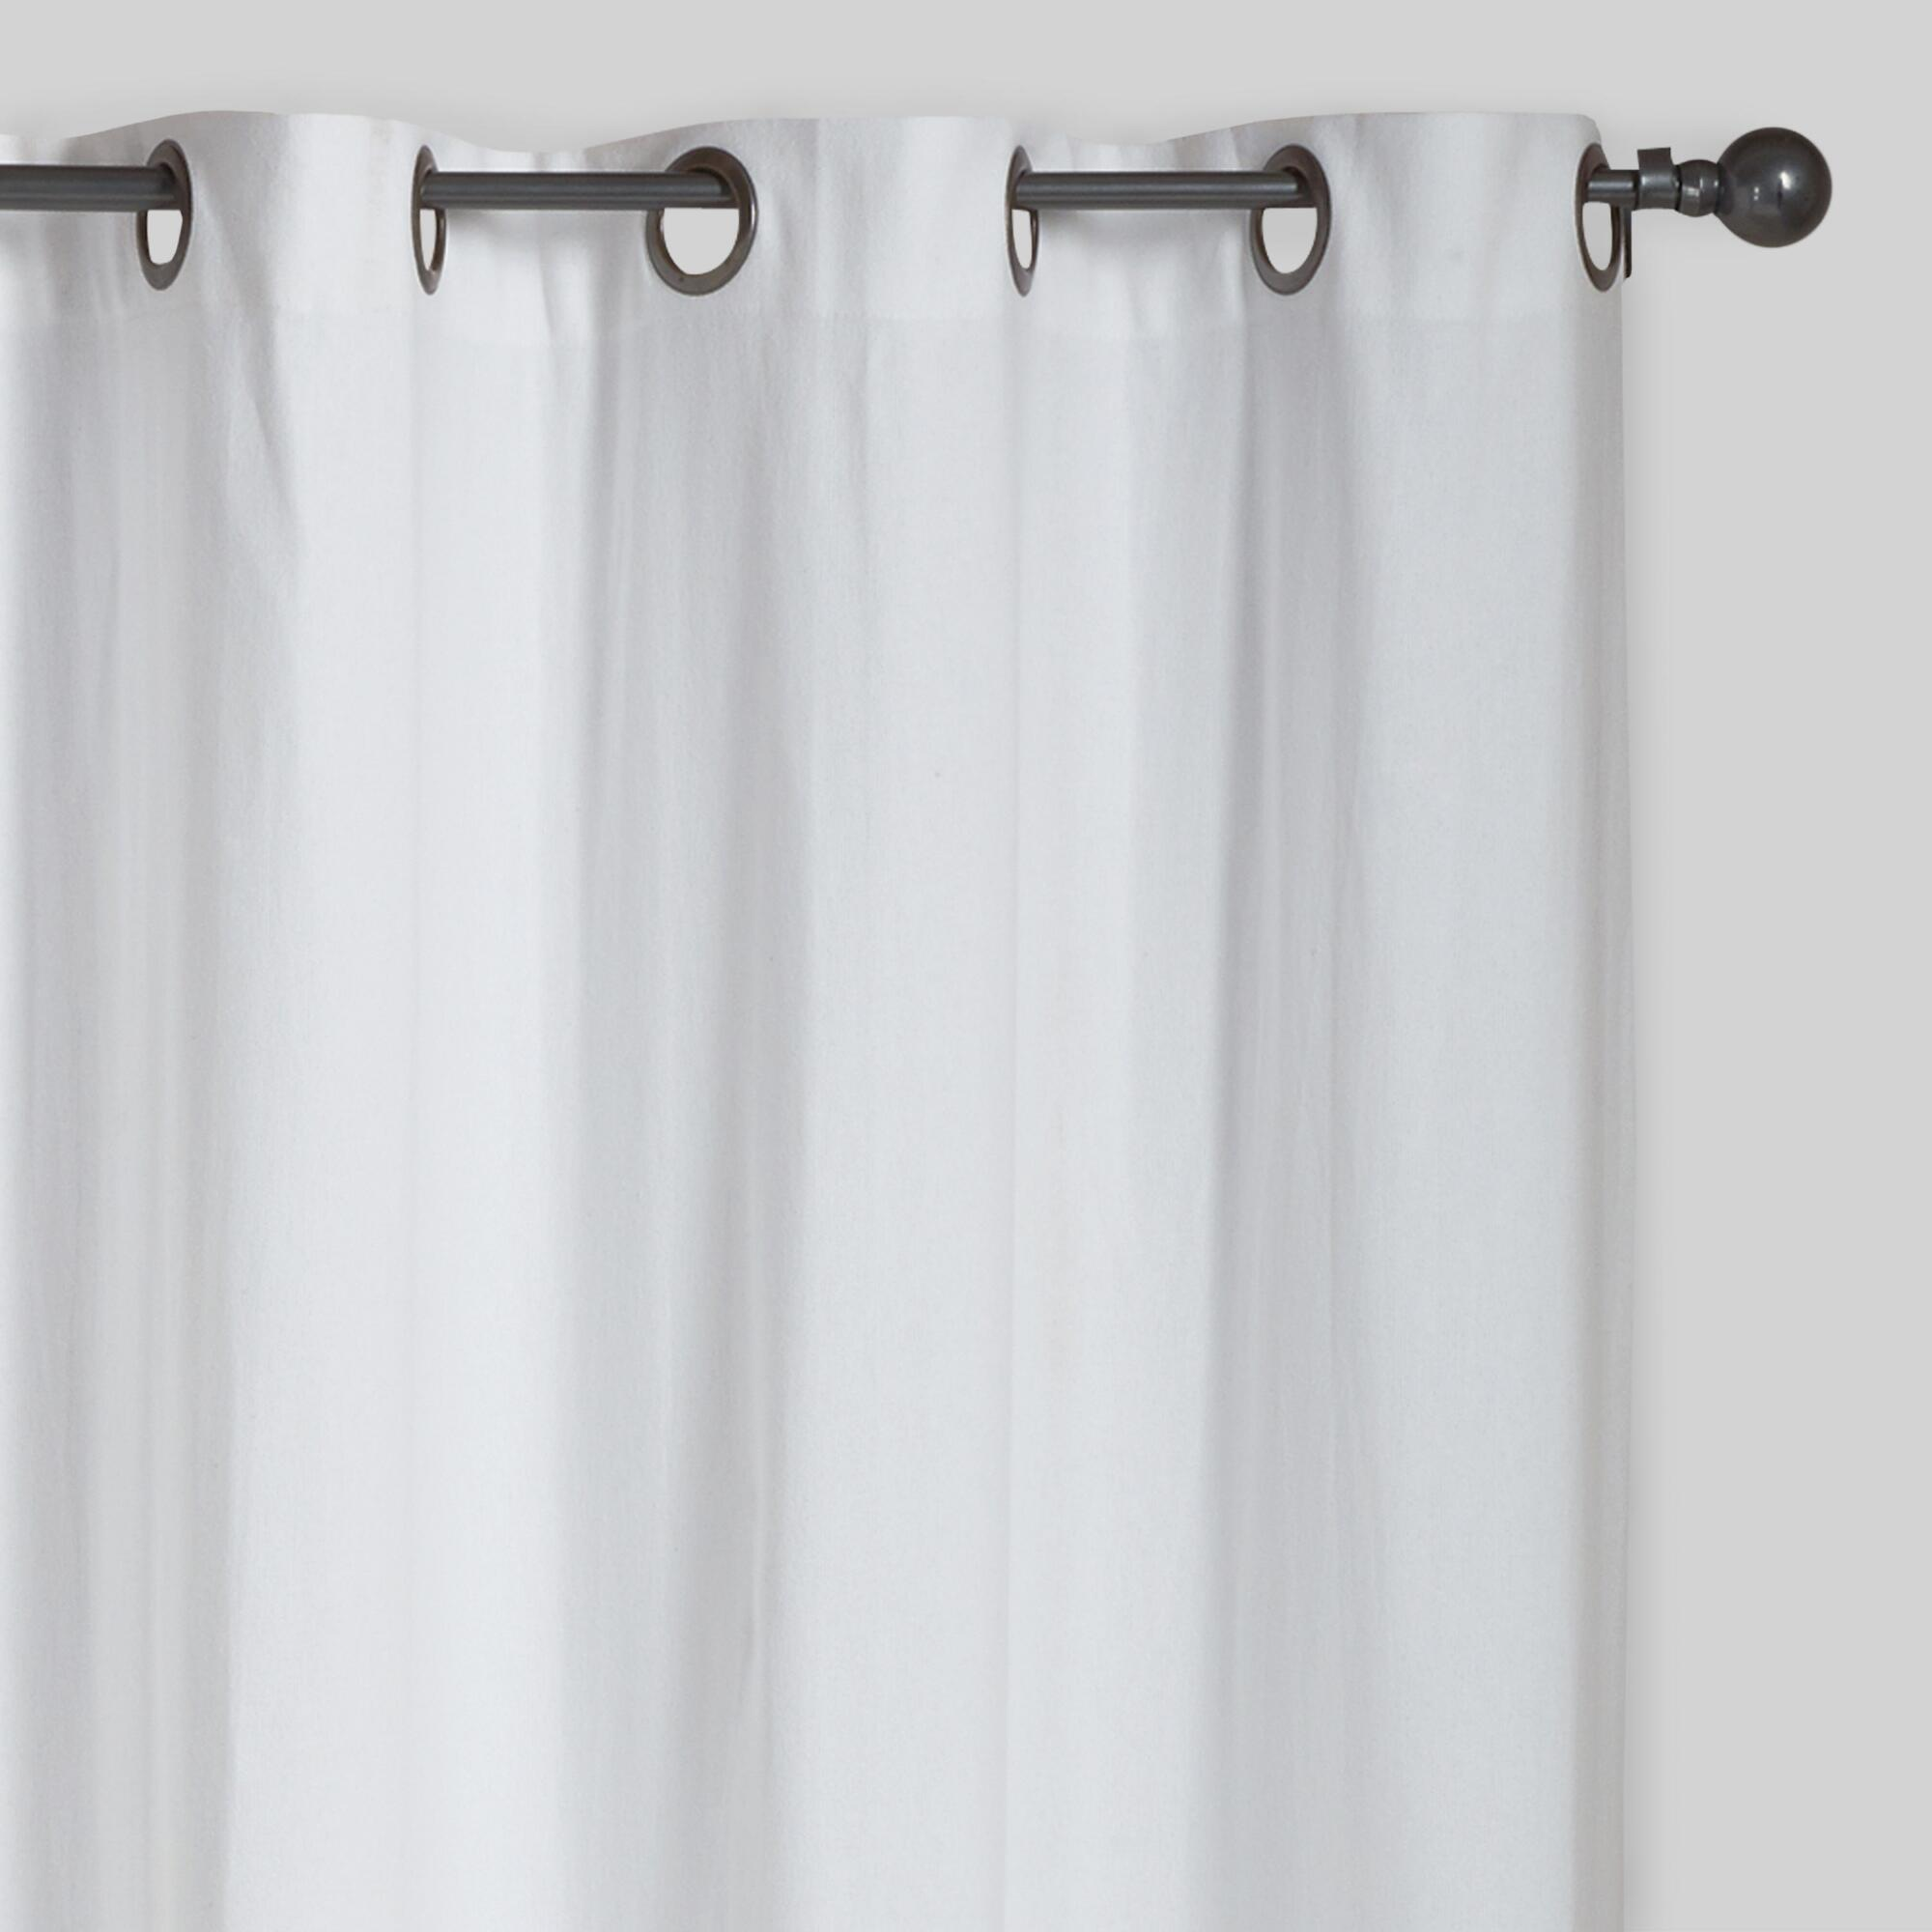 White window curtains - White Window Curtains 14